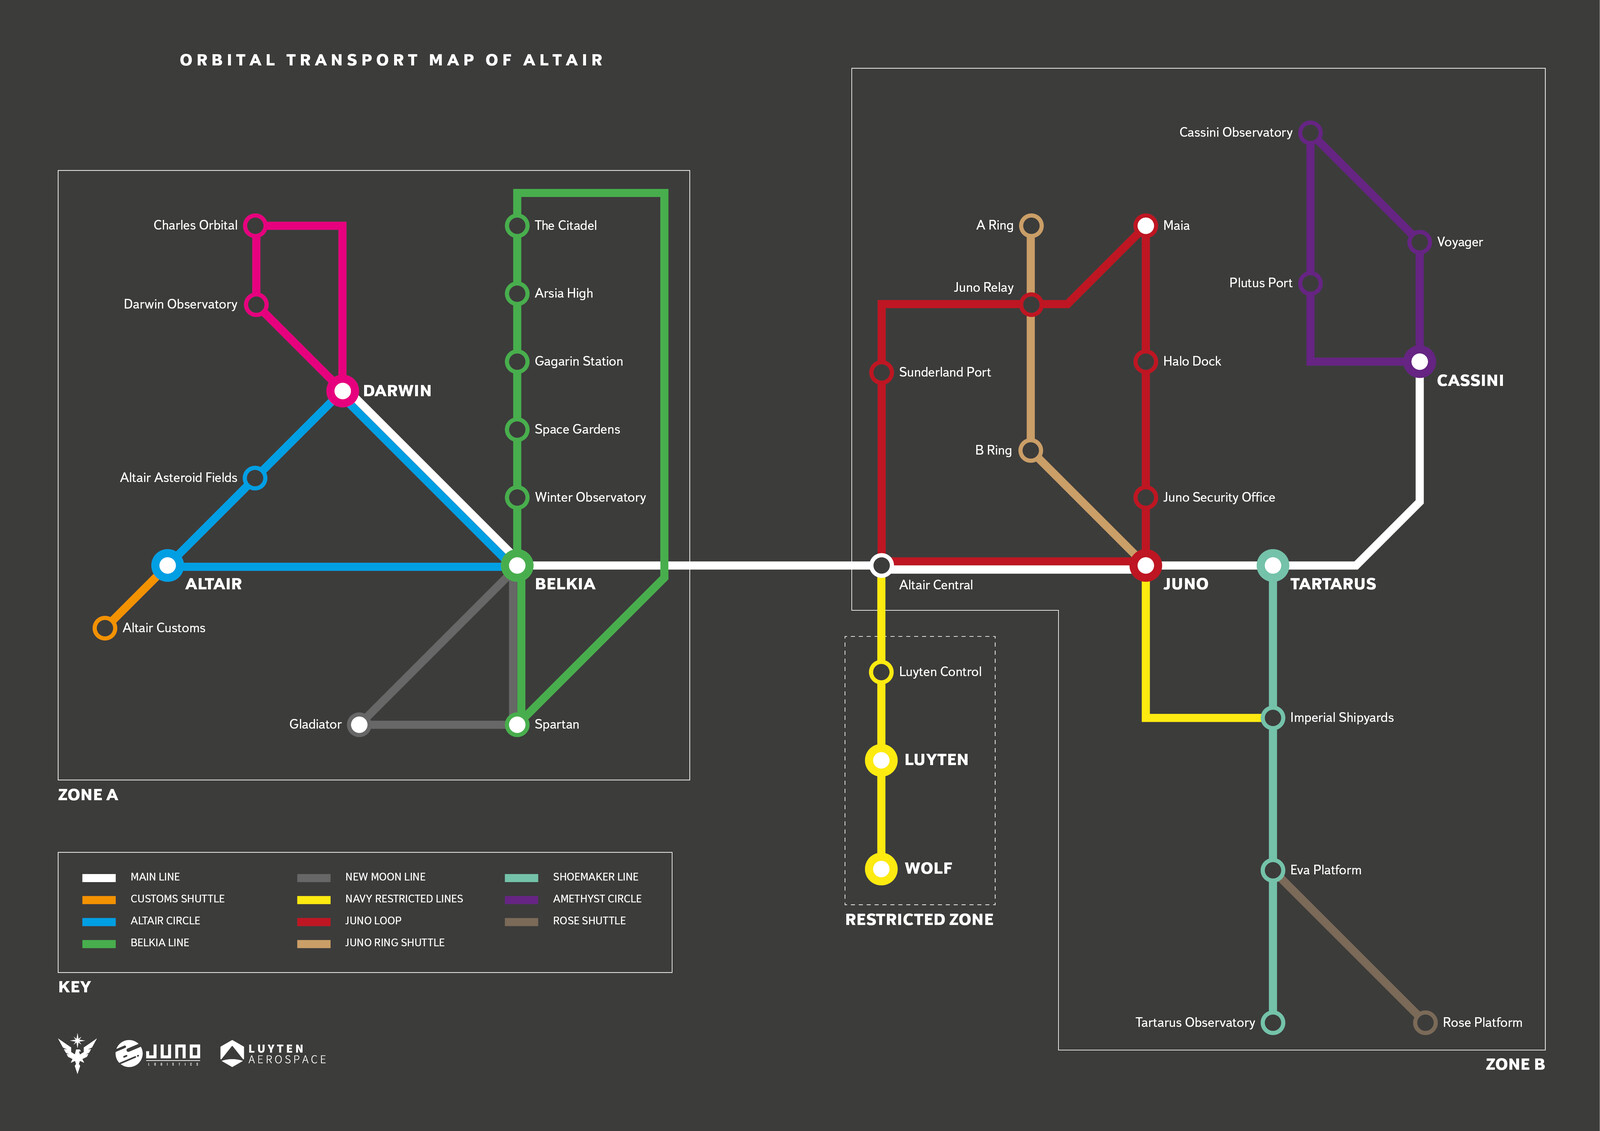 Transport Map of Altair